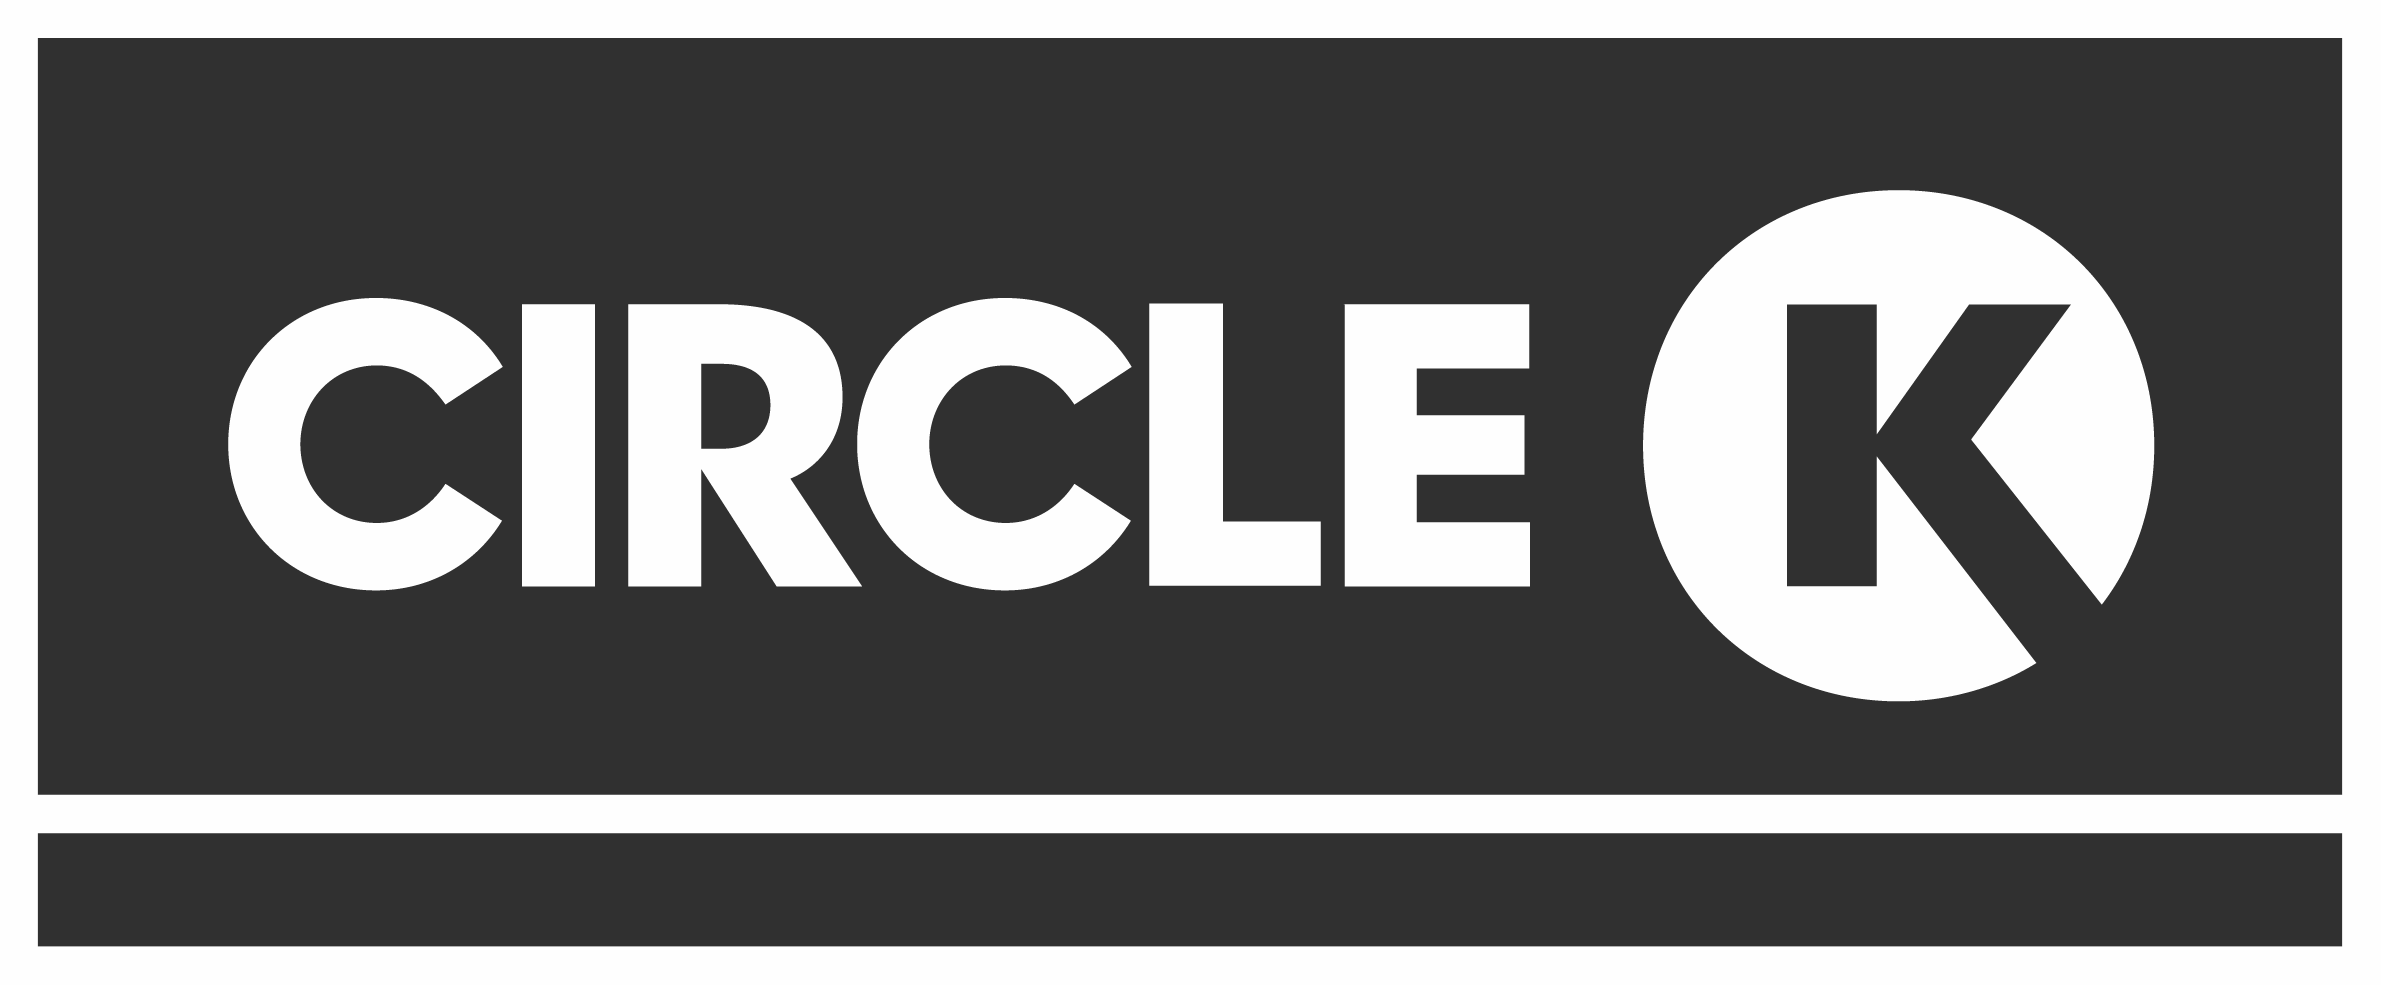 The logo of Circle K in a dark color